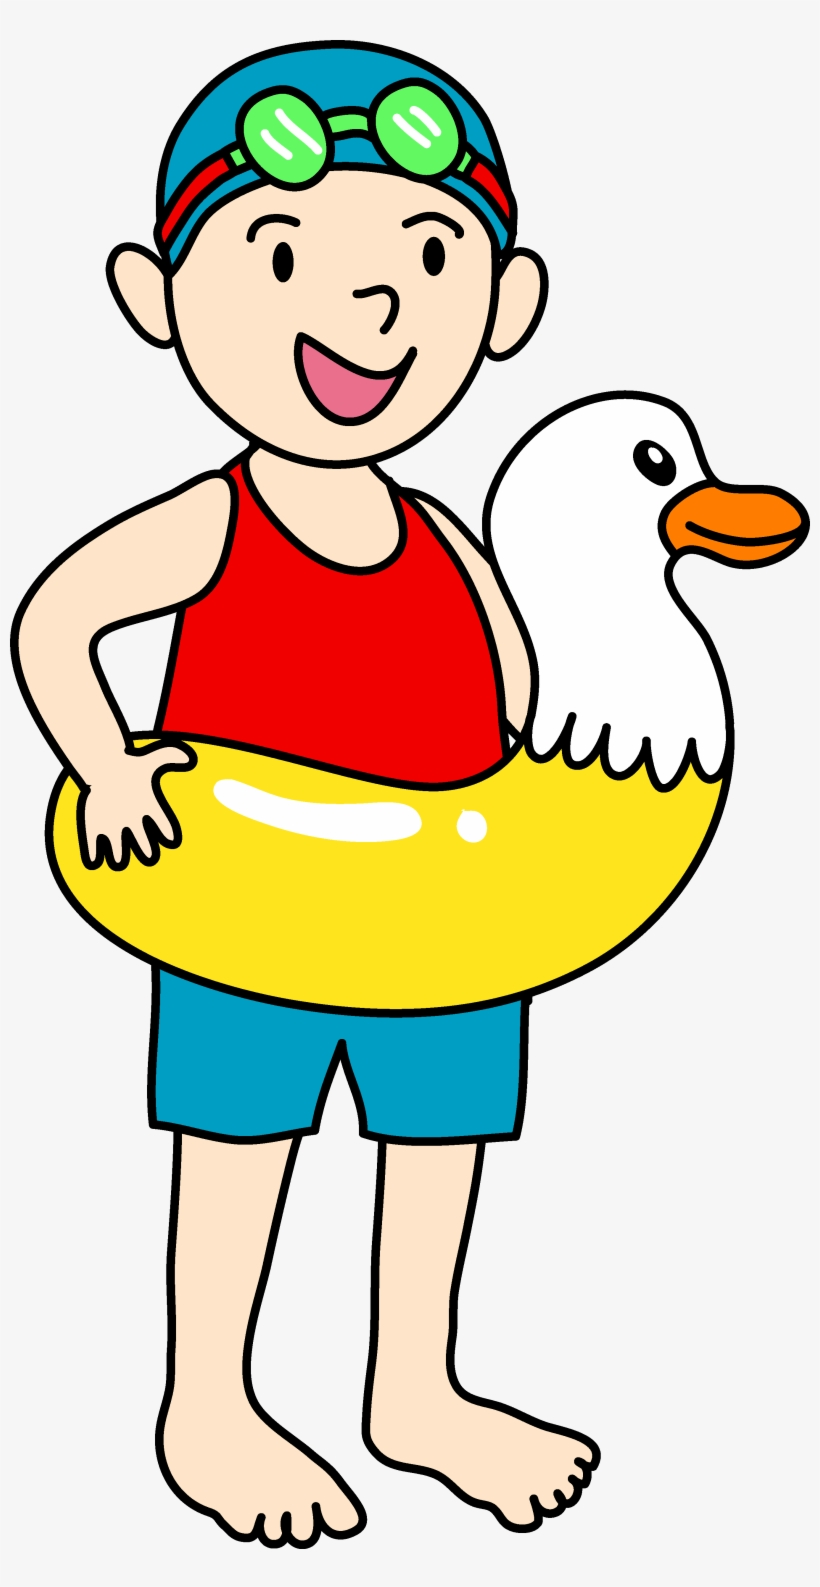 Swim pool clipart boy picture free download Swimming Clipart Transparent Clip Art Images - Pool Clipart ... picture free download